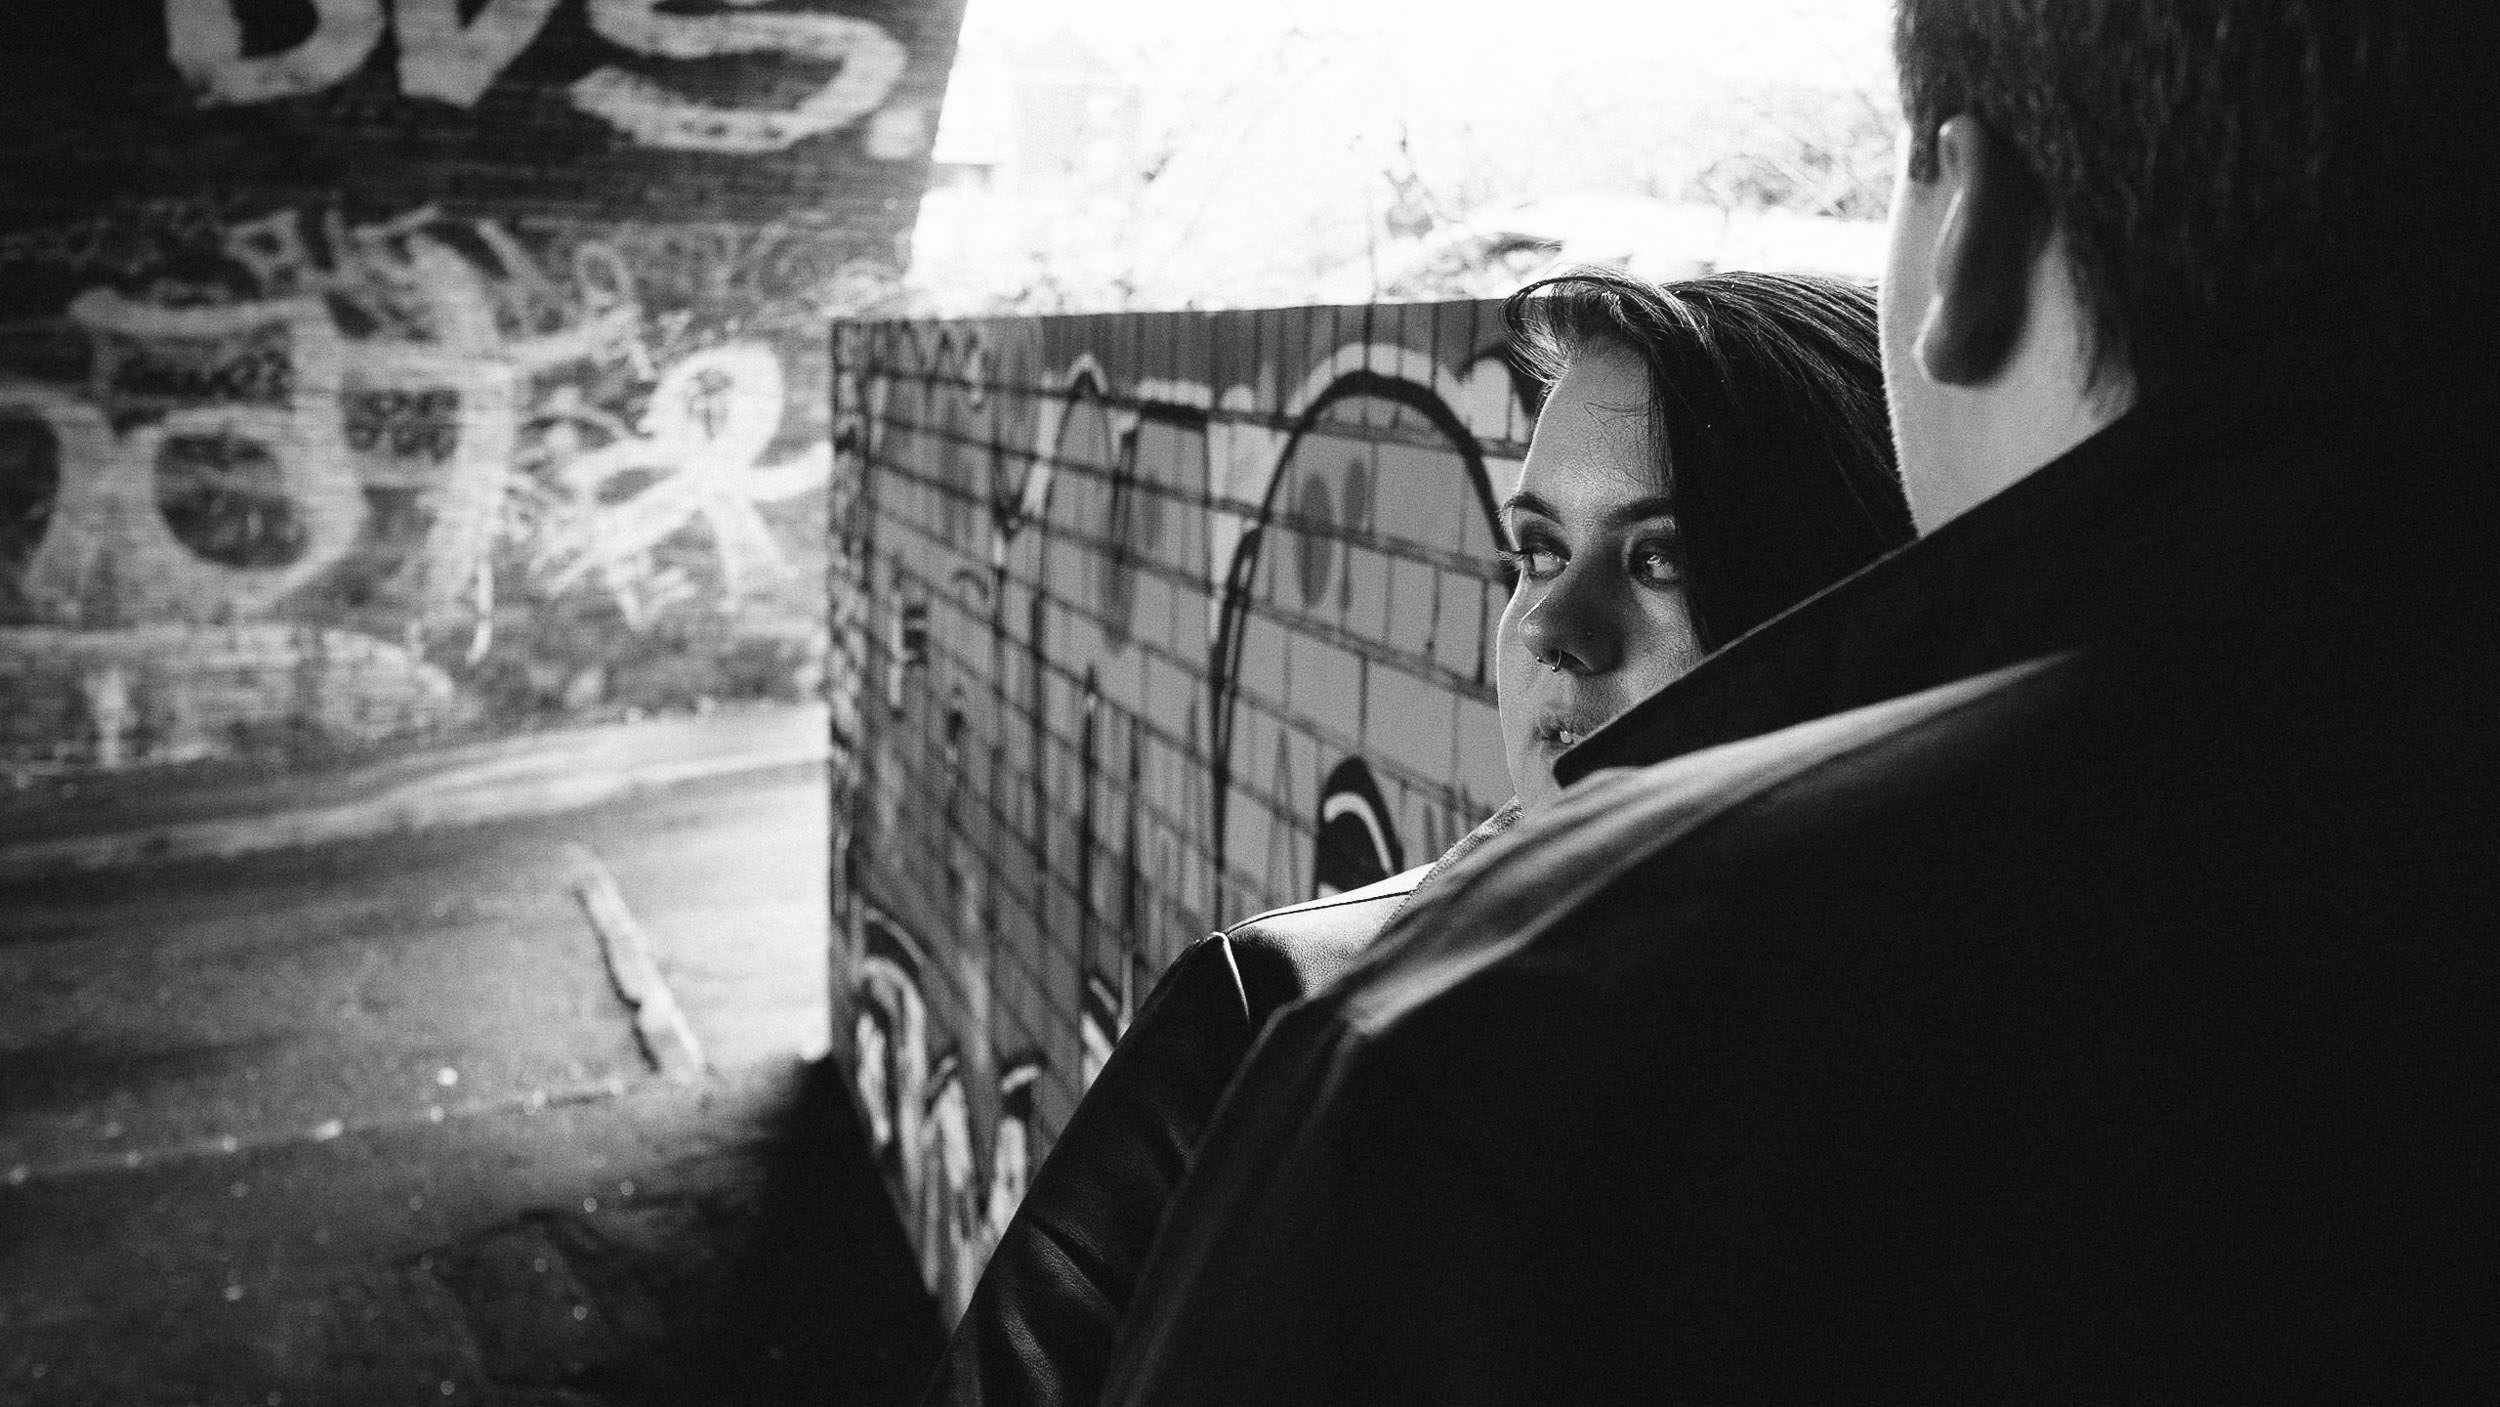 A black and white photo of an engaged couple standing under a brick arch surrounded by graffiti